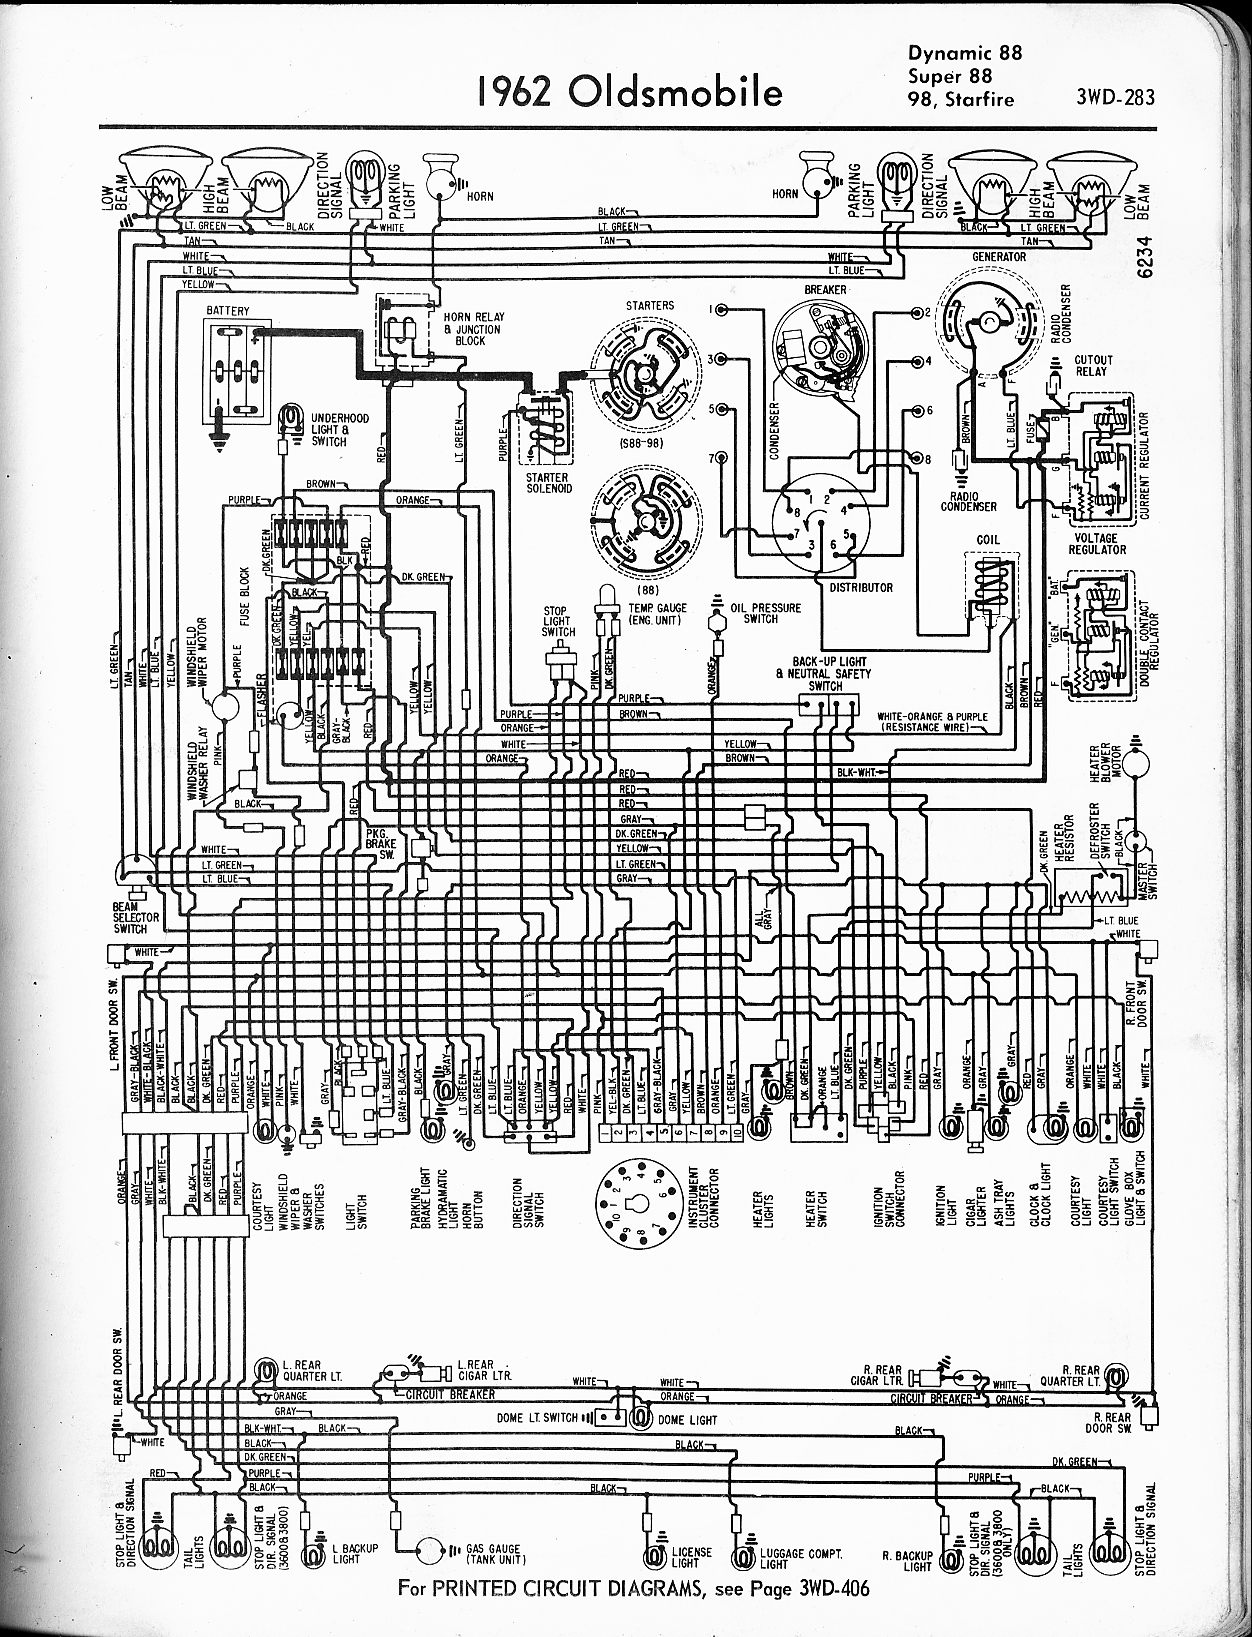 oldsmobile wiring diagrams the old car manual project rh oldcarmanualproject com 1949 Oldsmobile Wiring-Diagram 2000 Oldsmobile Silhouette Engine Diagram